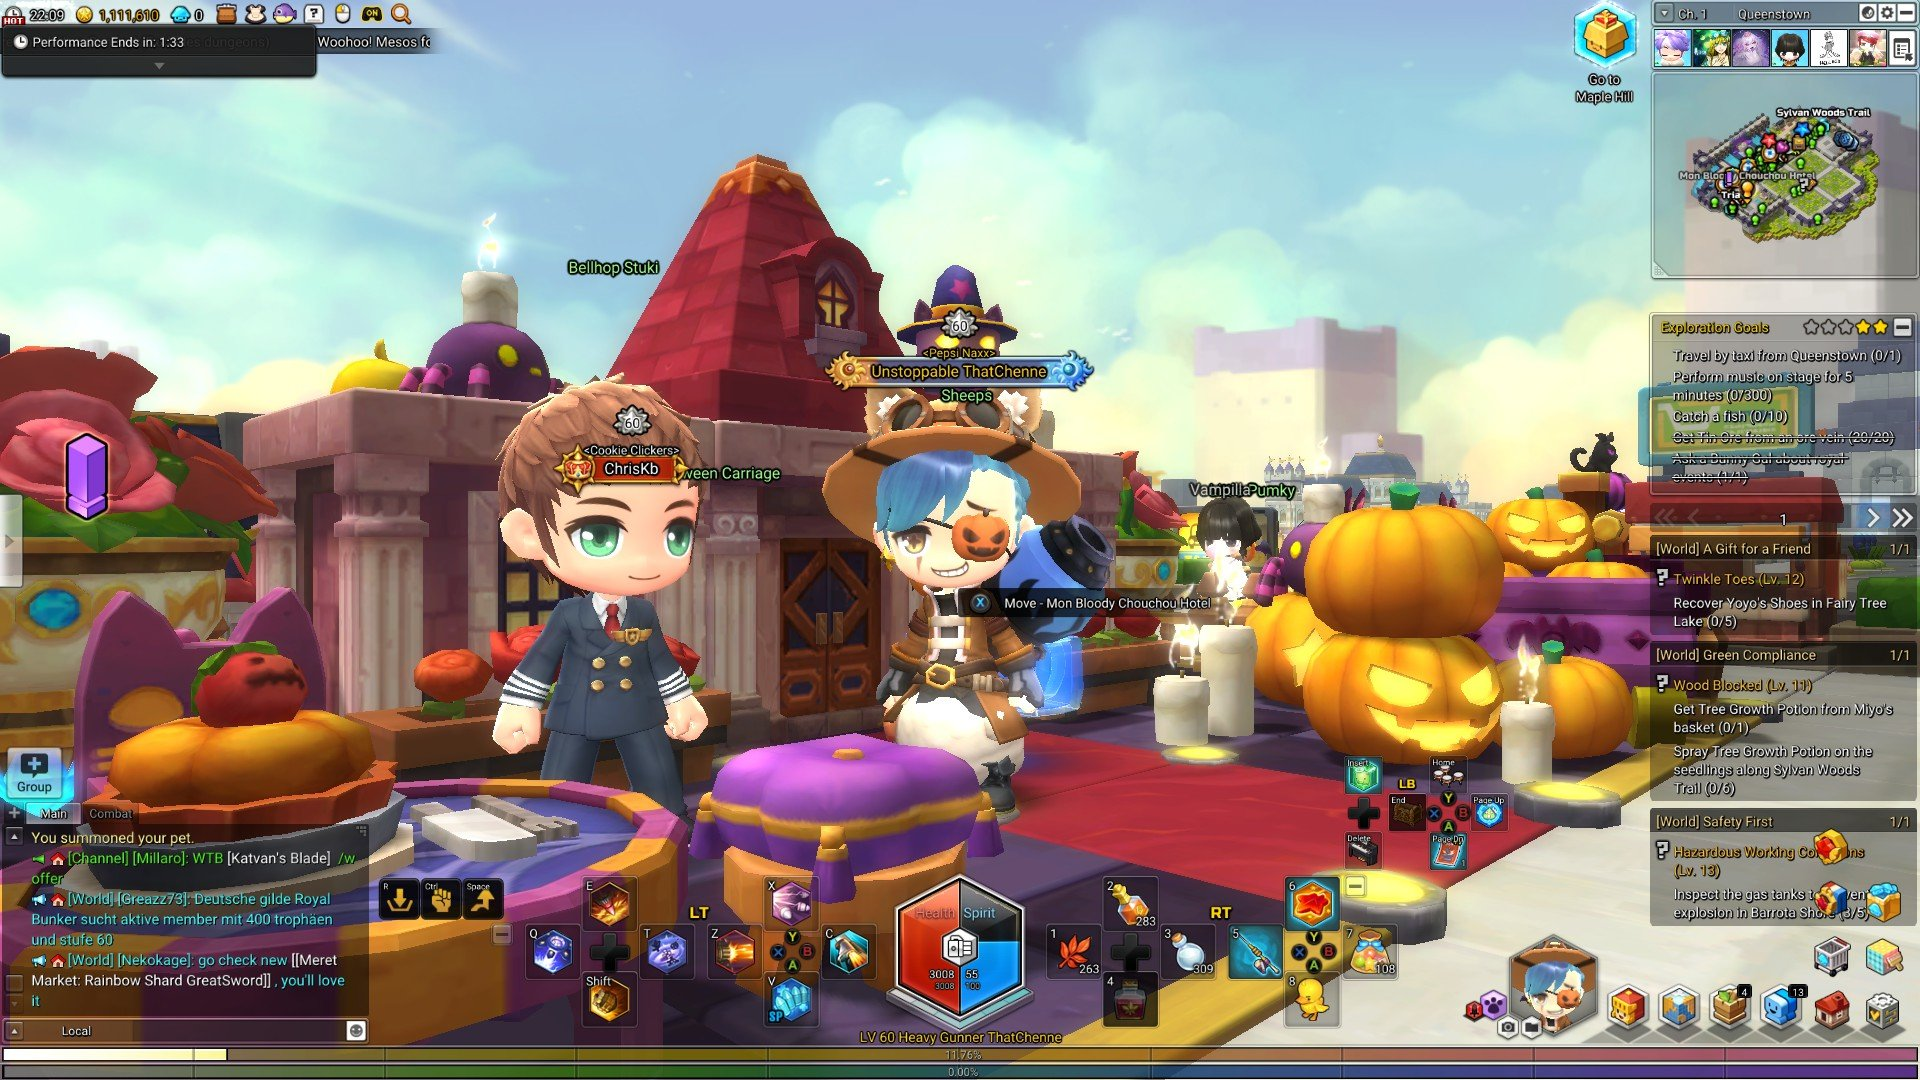 Maplestory 2: How to find the Halloween Shop - PwrDown